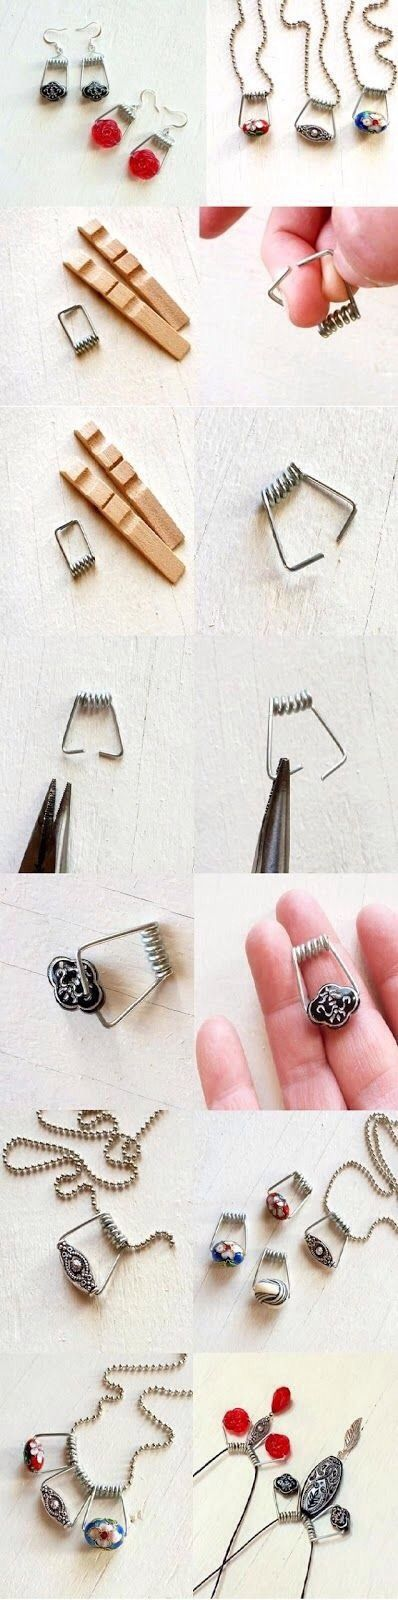 DIY Clothespin Jewelry! What An Adorable And Simple Idea!